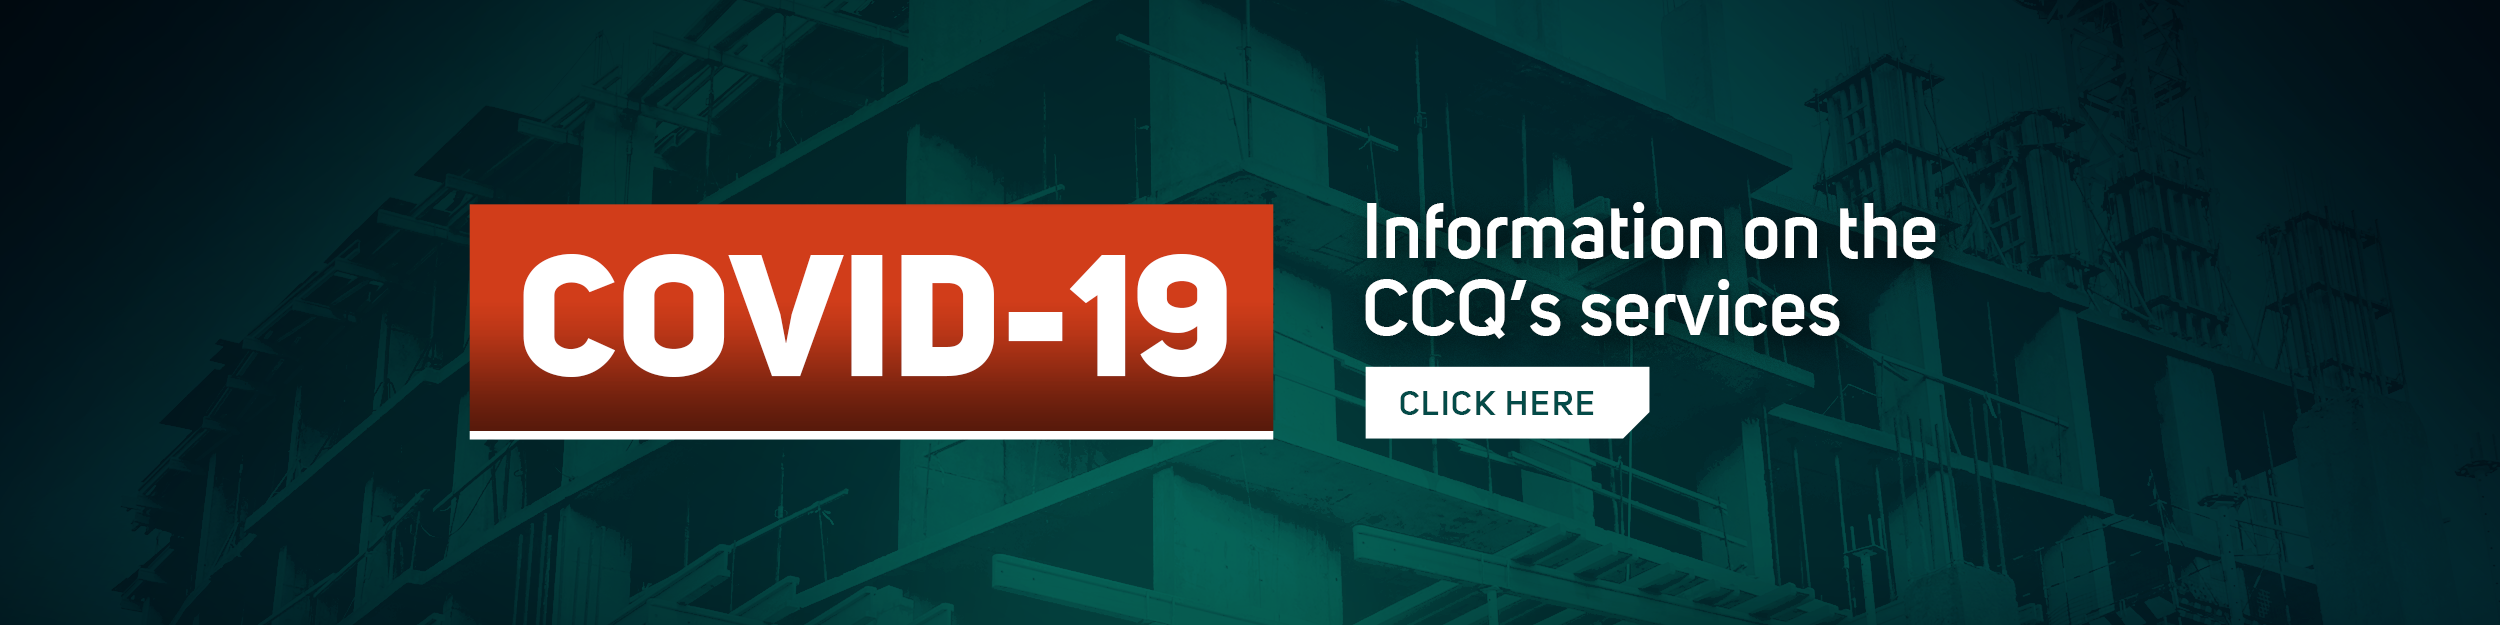 Information on the CCQ's services